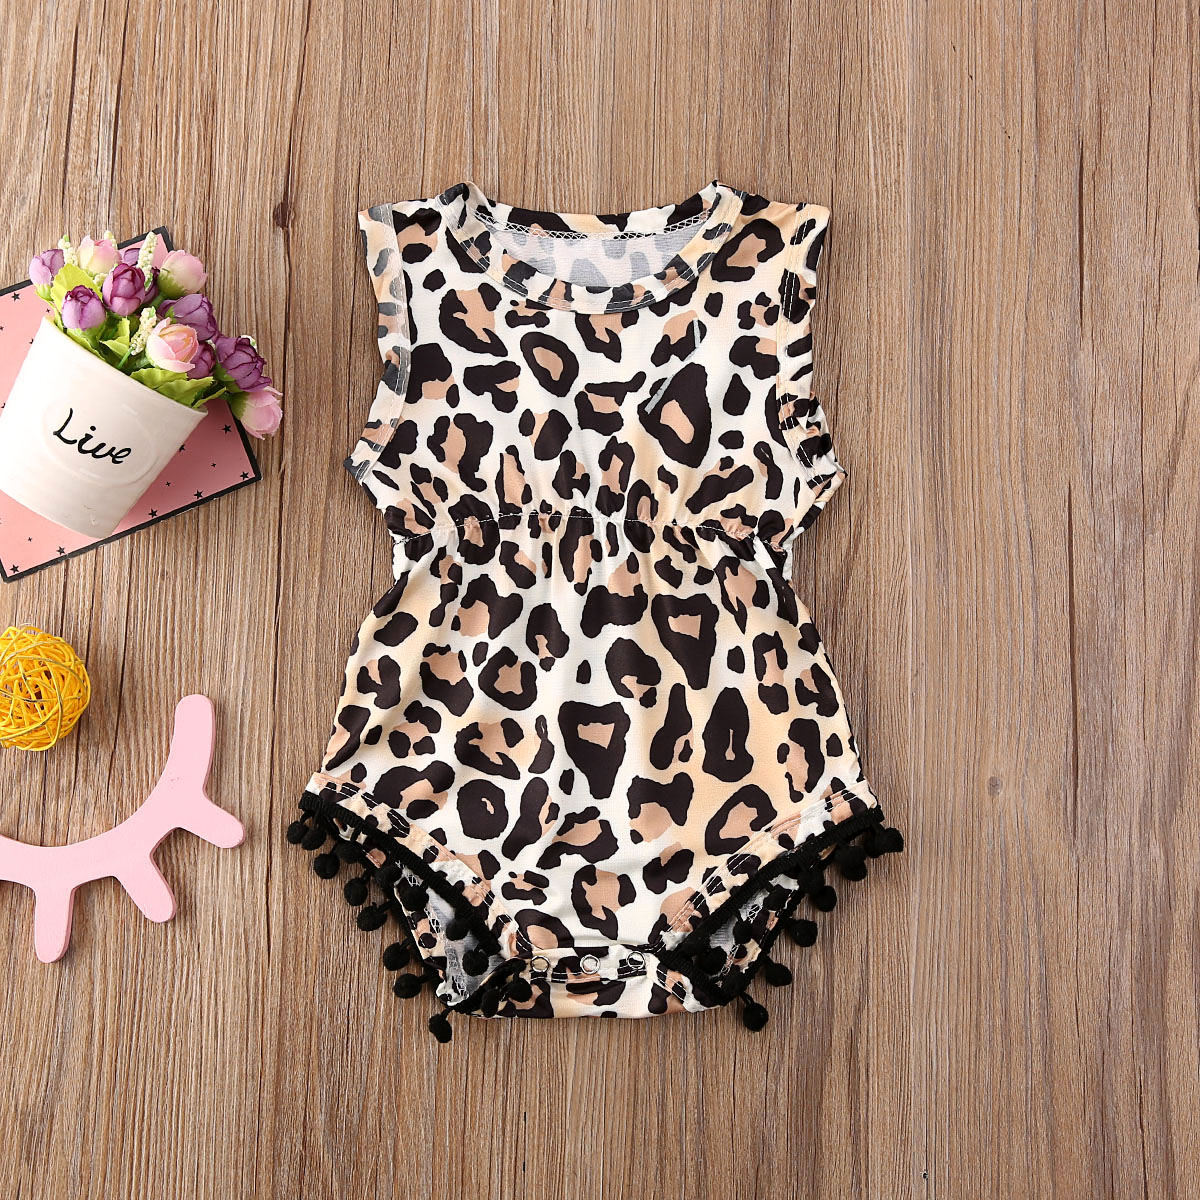 Pudcoco Newborn Baby Girl Clothes Leopard Sunflower Print Sleeveless Tassel Romper Jumpsuit One-Piece Outfit Sunsuit Clothes